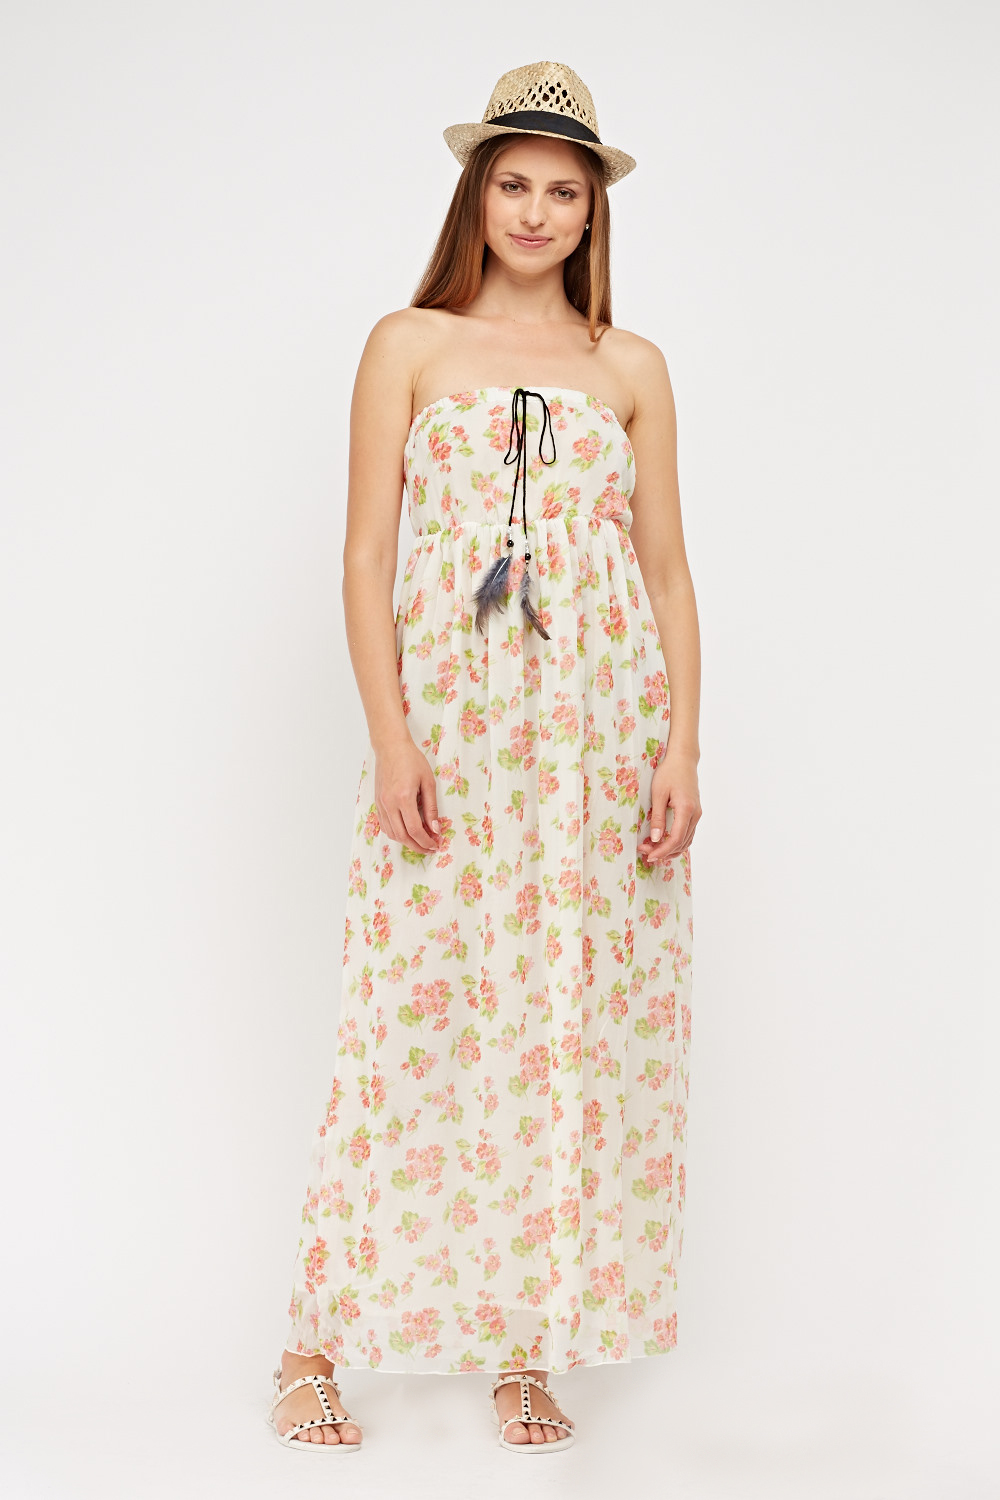 Strapless Floral Print Maxi Dress White Multi Just 5